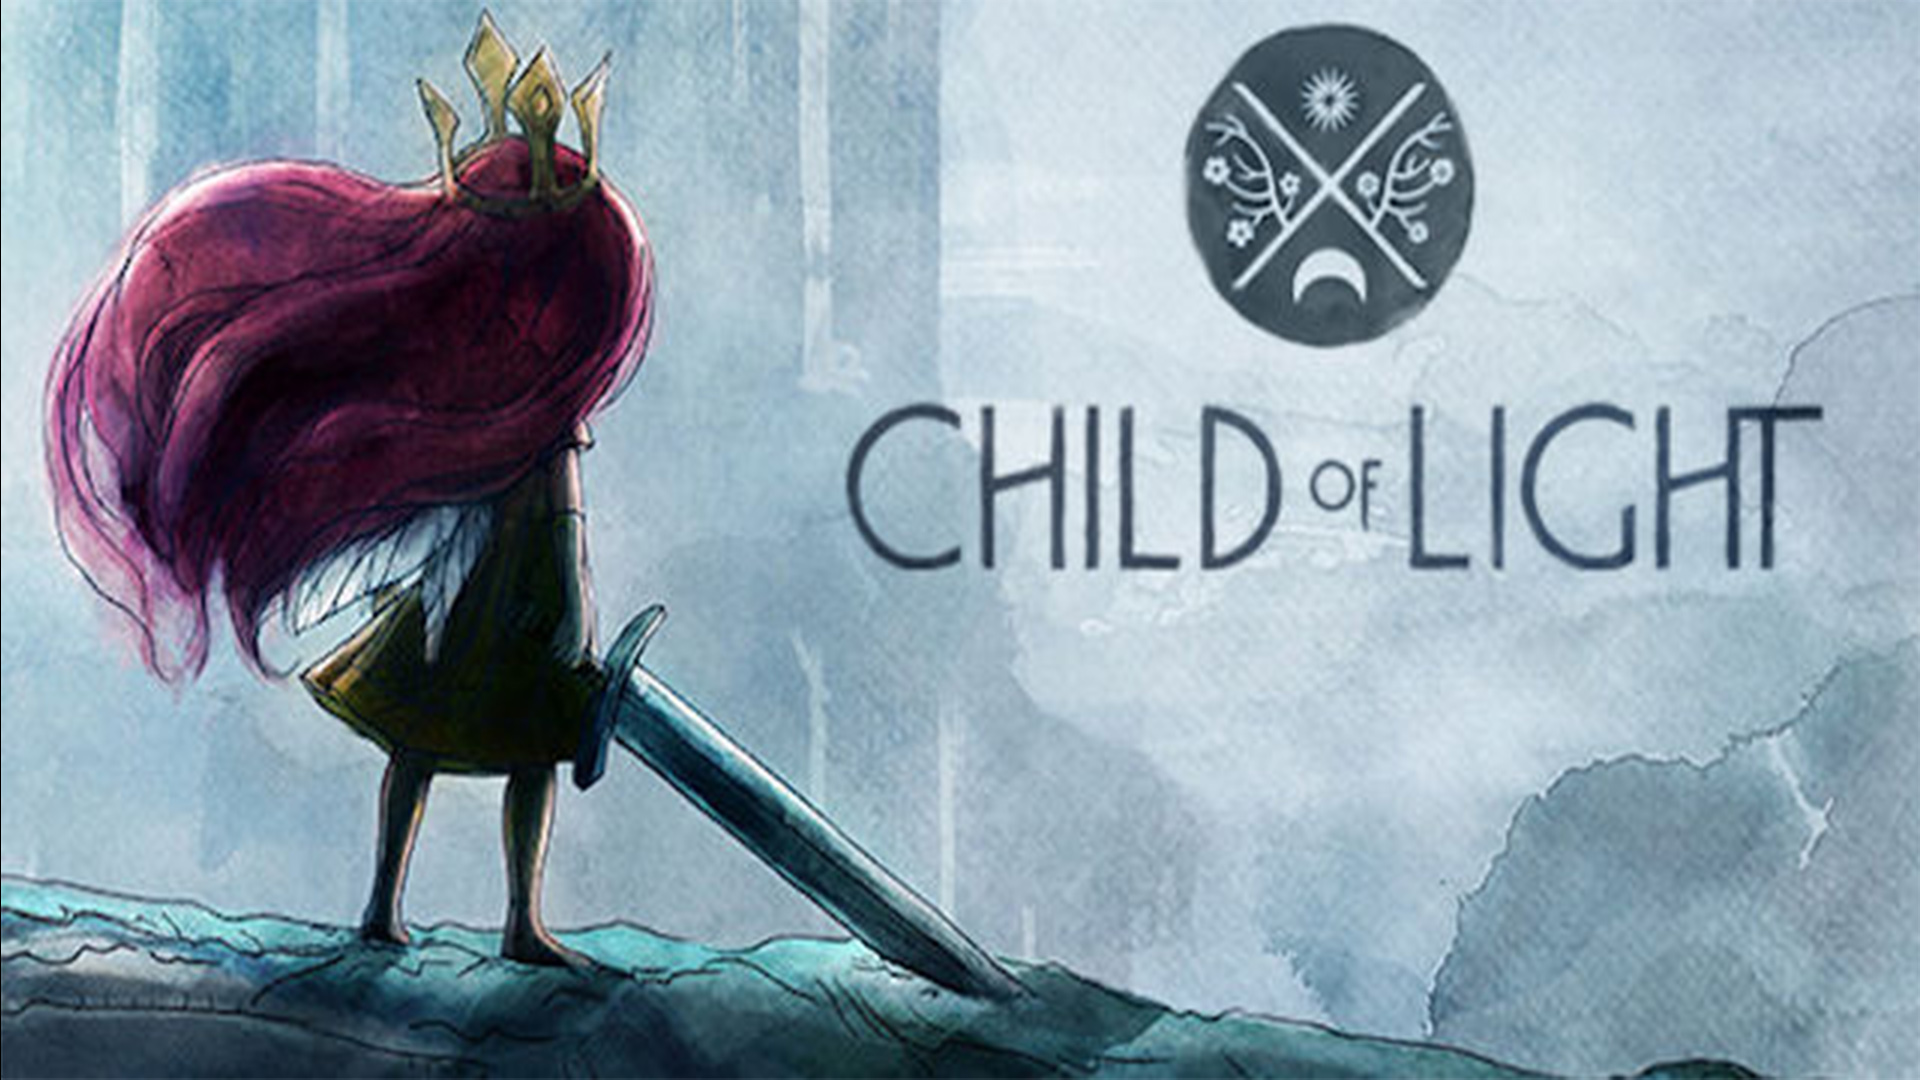 Msi Wallpaper Full Hd Child Of Light Wallpapers Pictures Images